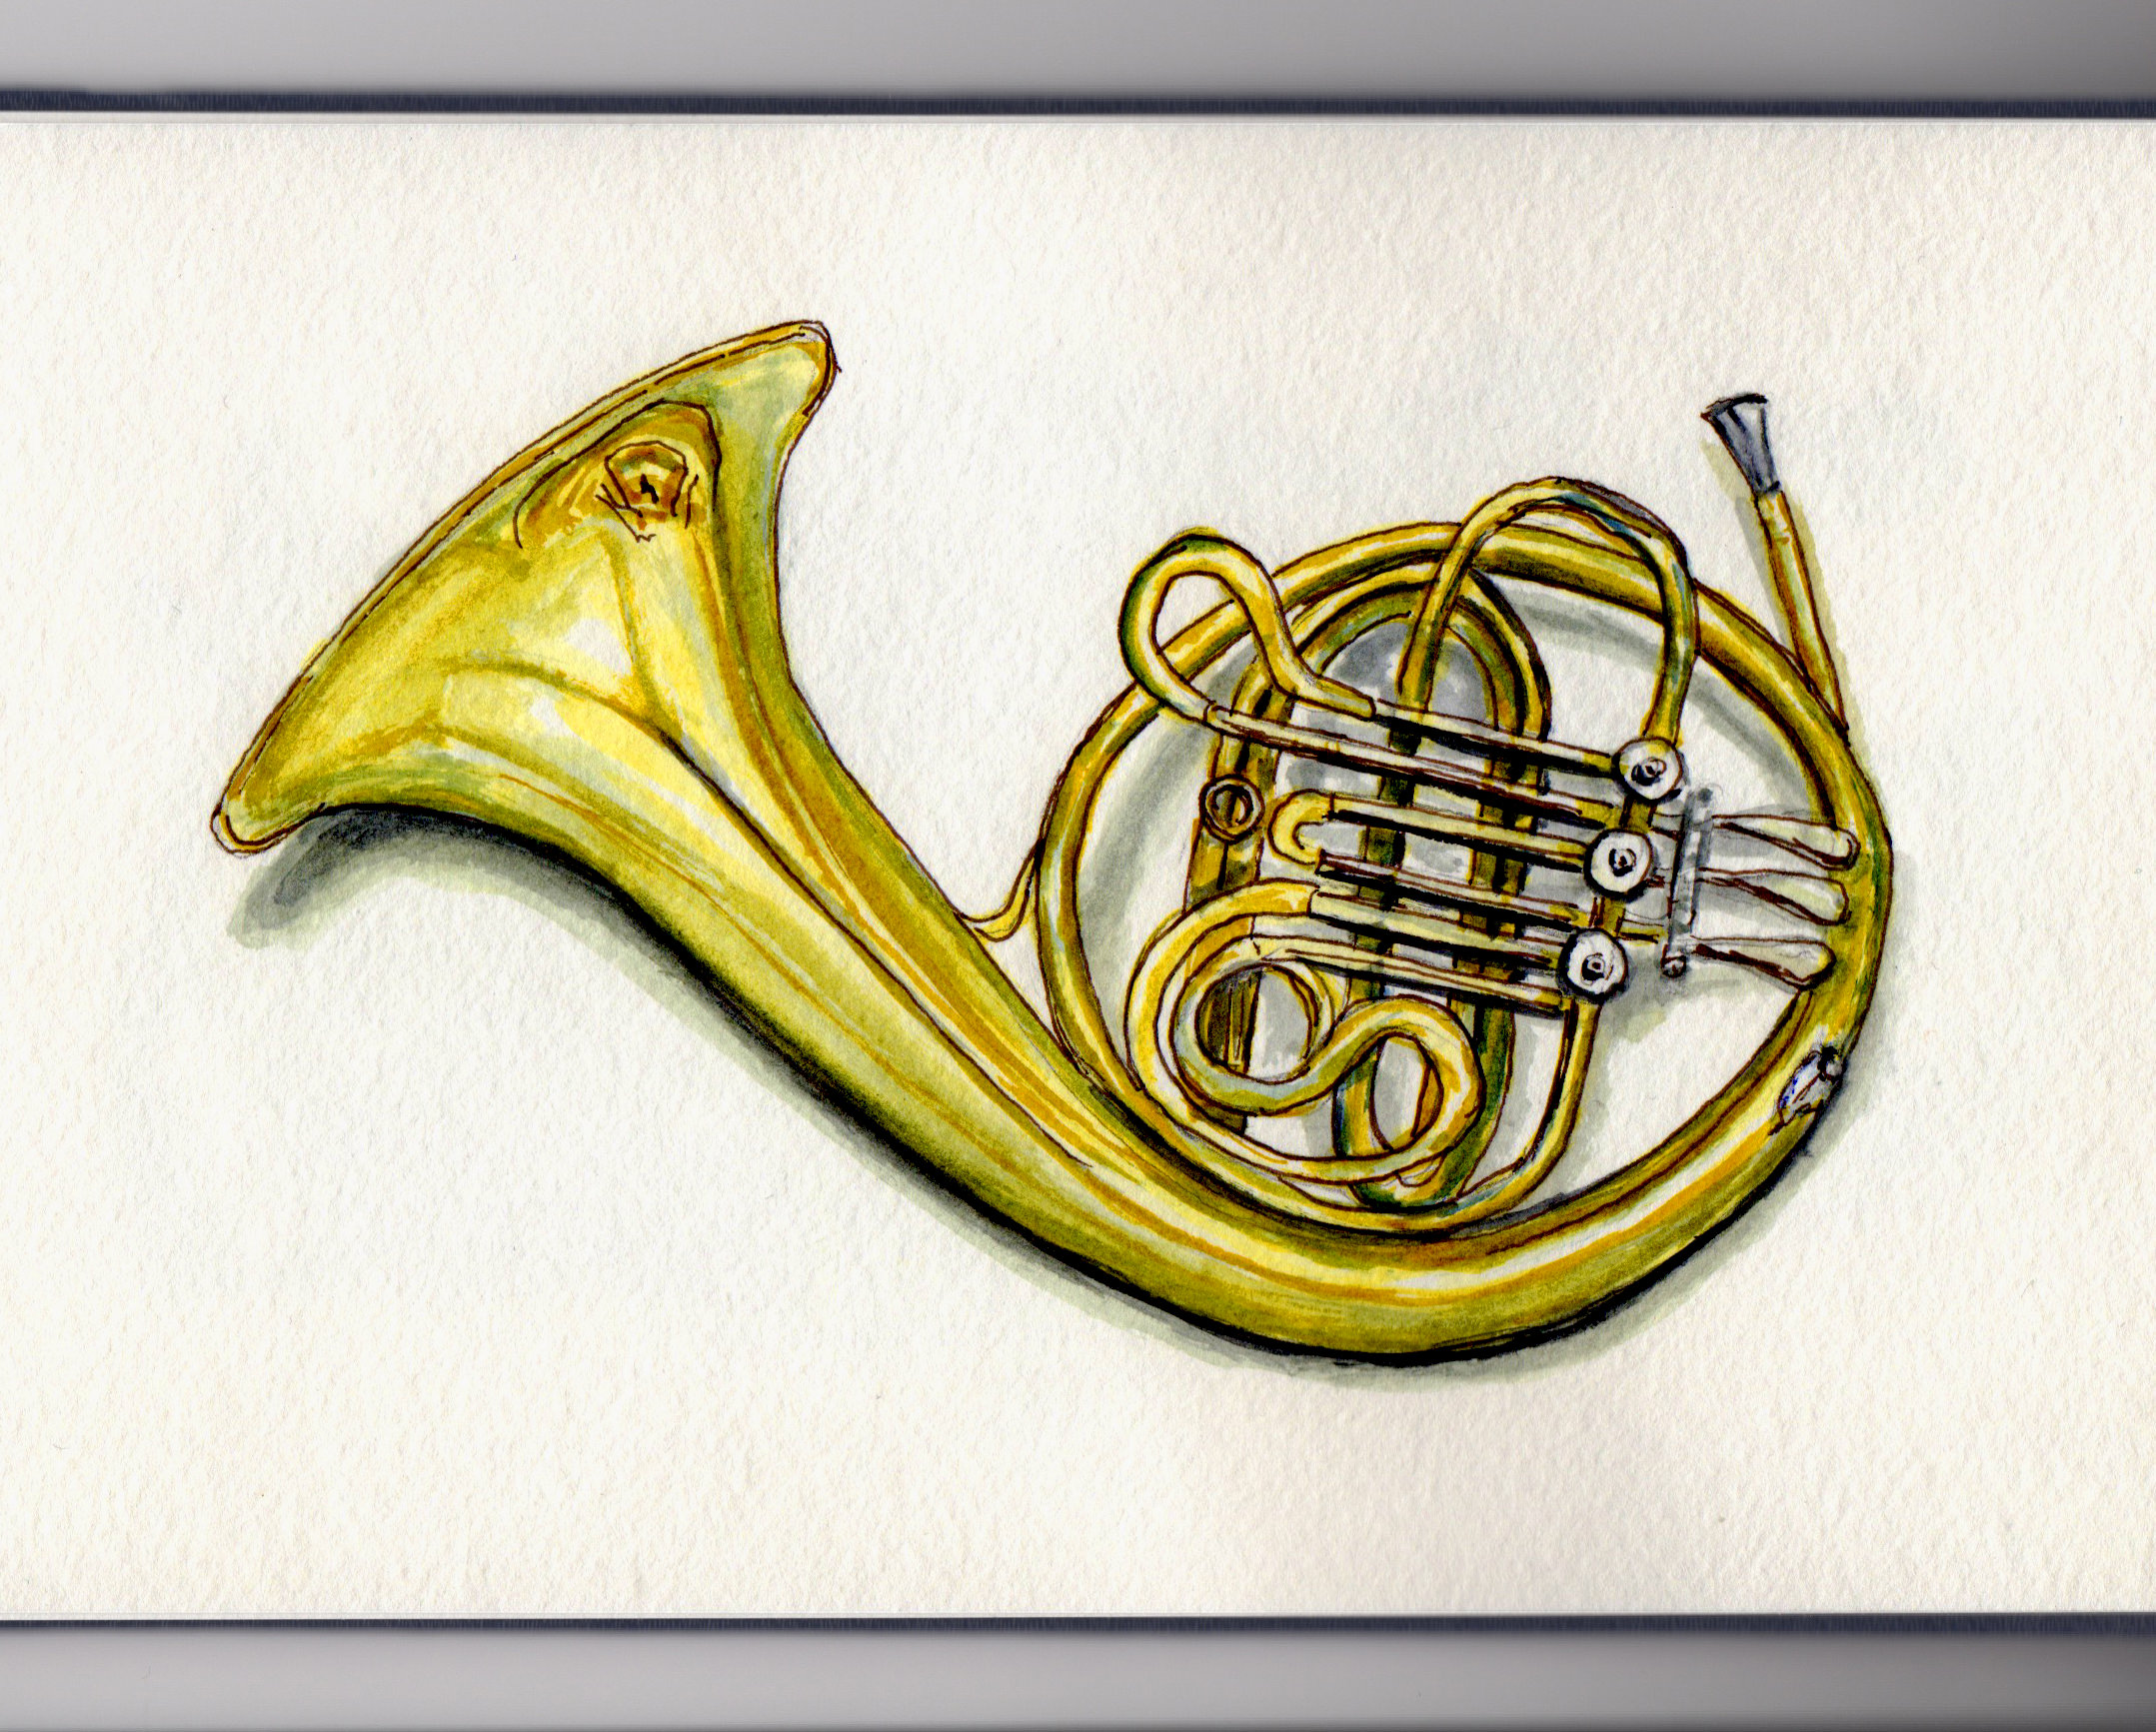 French Horn & Second Thoughts